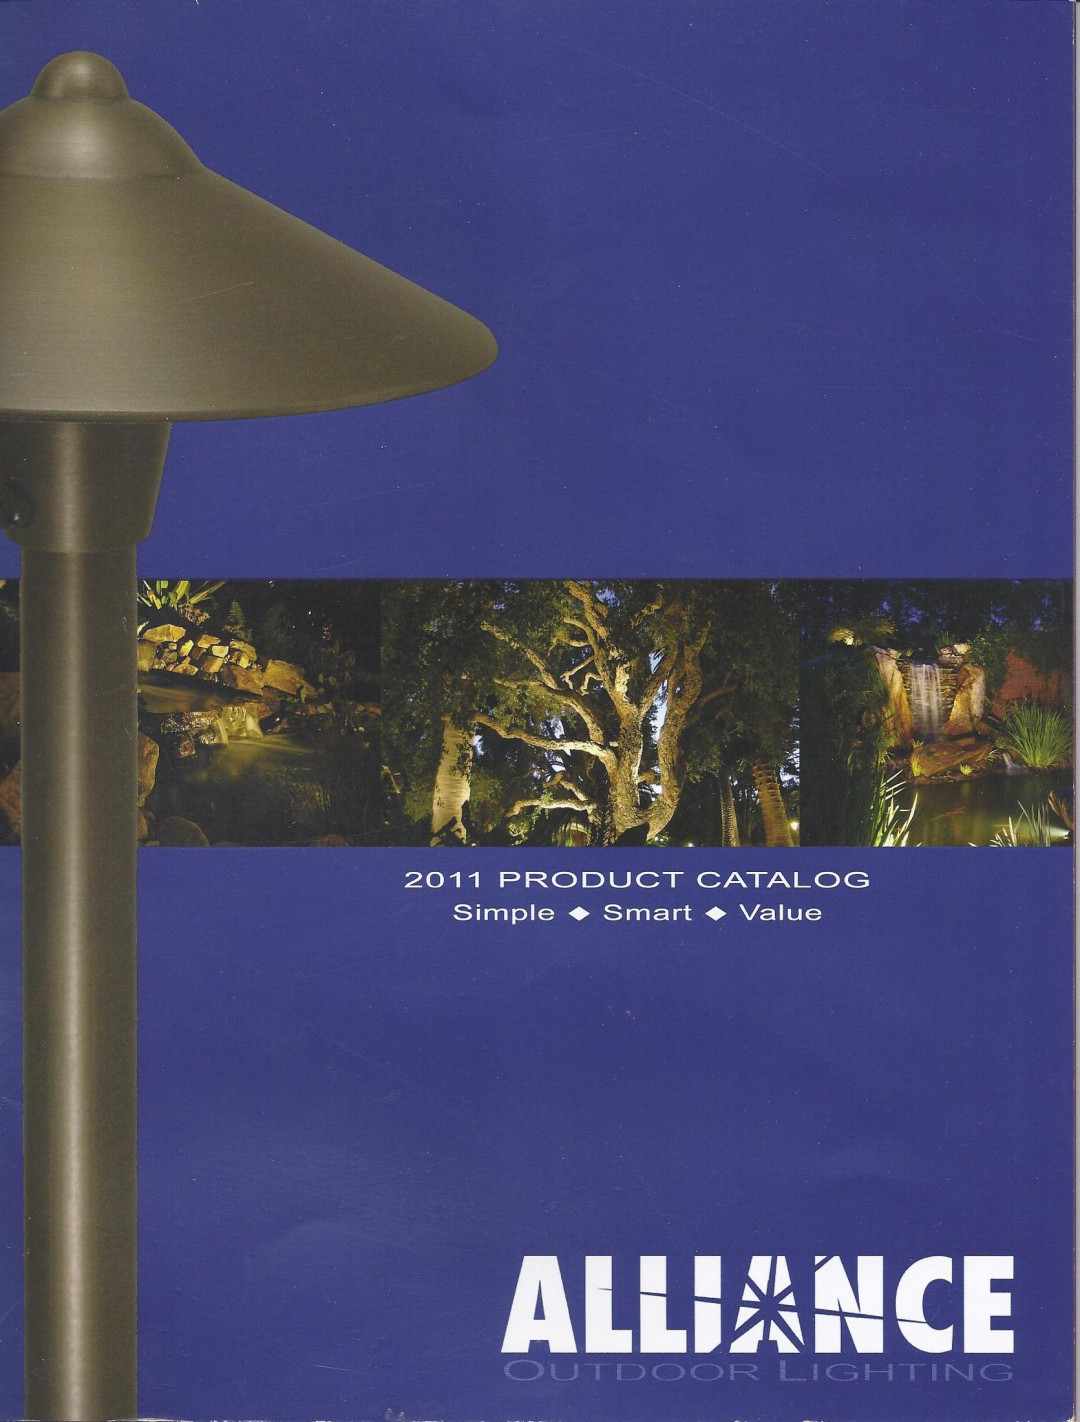 Outdoor Contracting Landscape Lighting Work Featured On The Cover Of 2017 Alliance Catalog